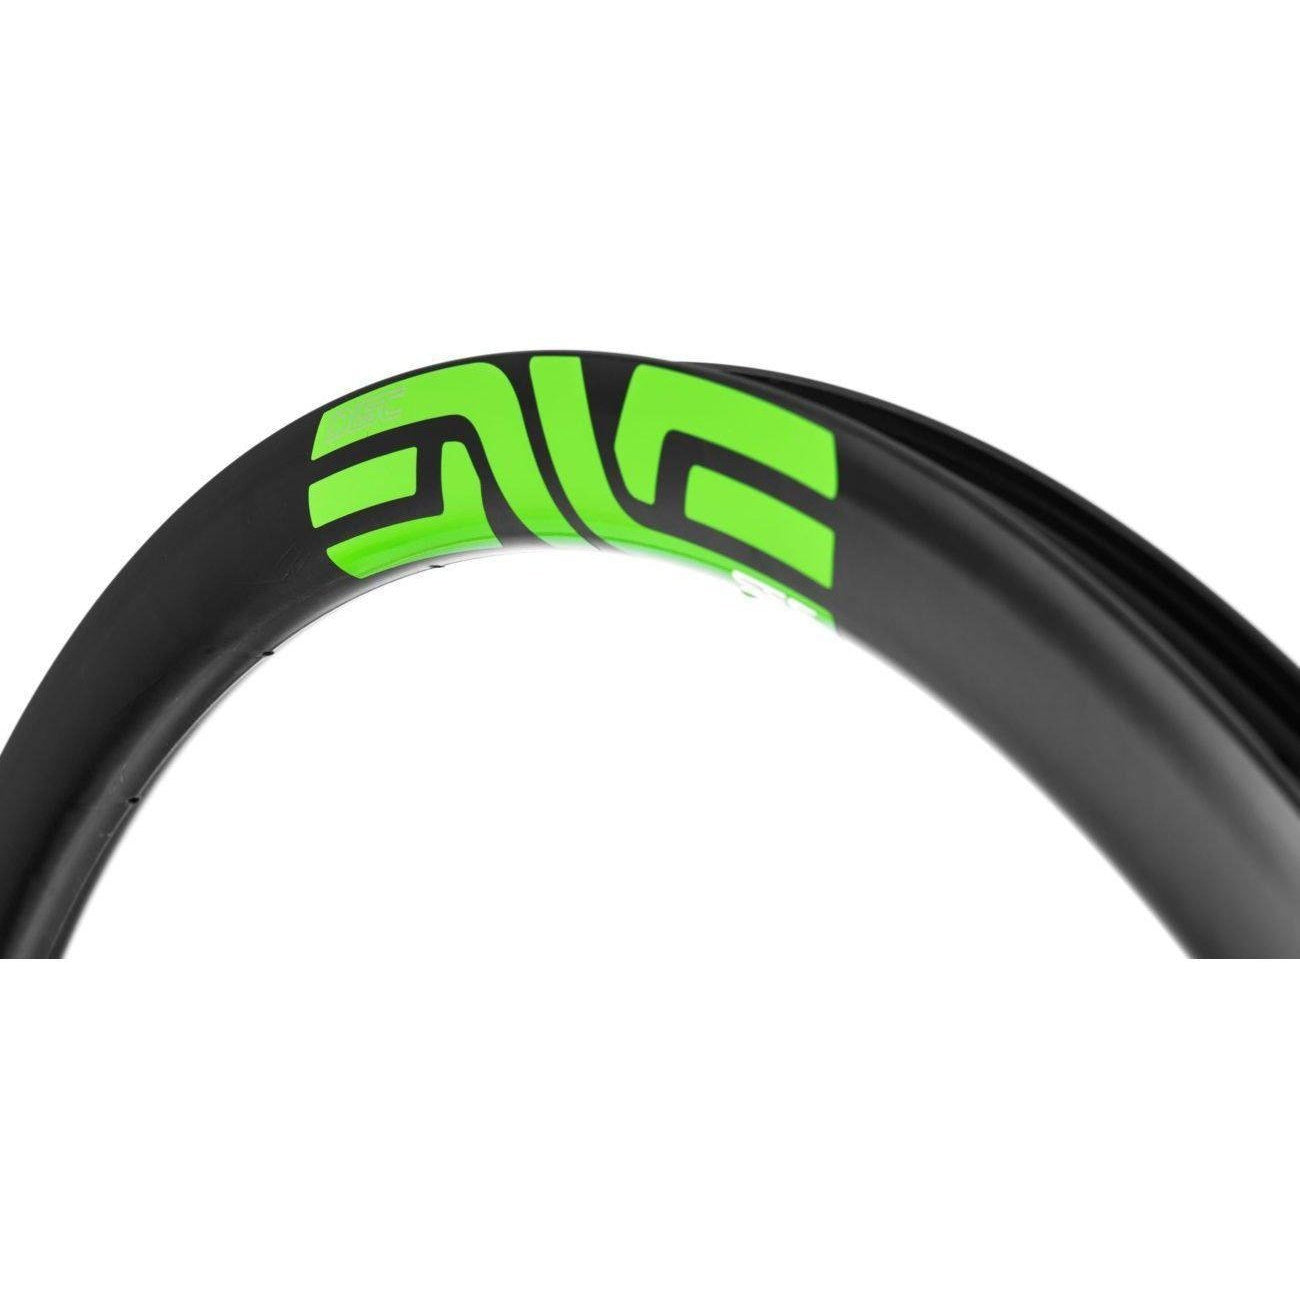 ENVE-ENVE SES 3.4 Disc Decals-SES 3.4 Disc-Front (38mm)-Green-EN70001000747-saddleback-elite-performance-cycling